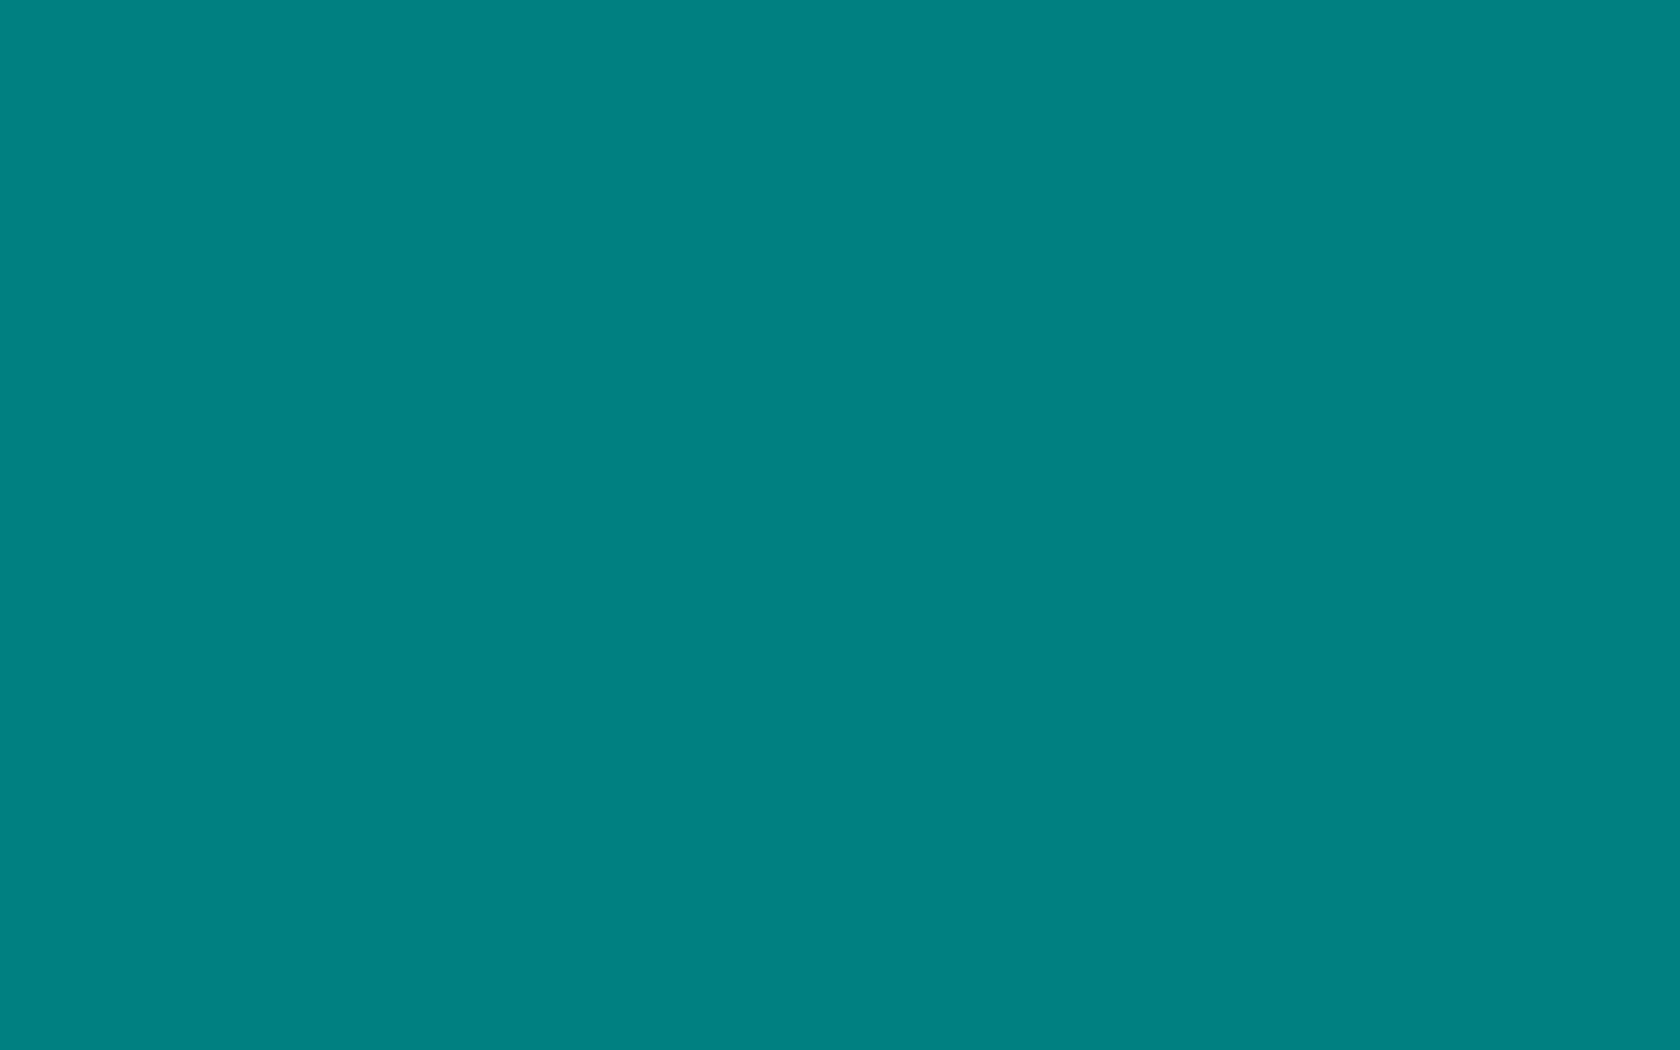 2560x1600 magic mint solid color background